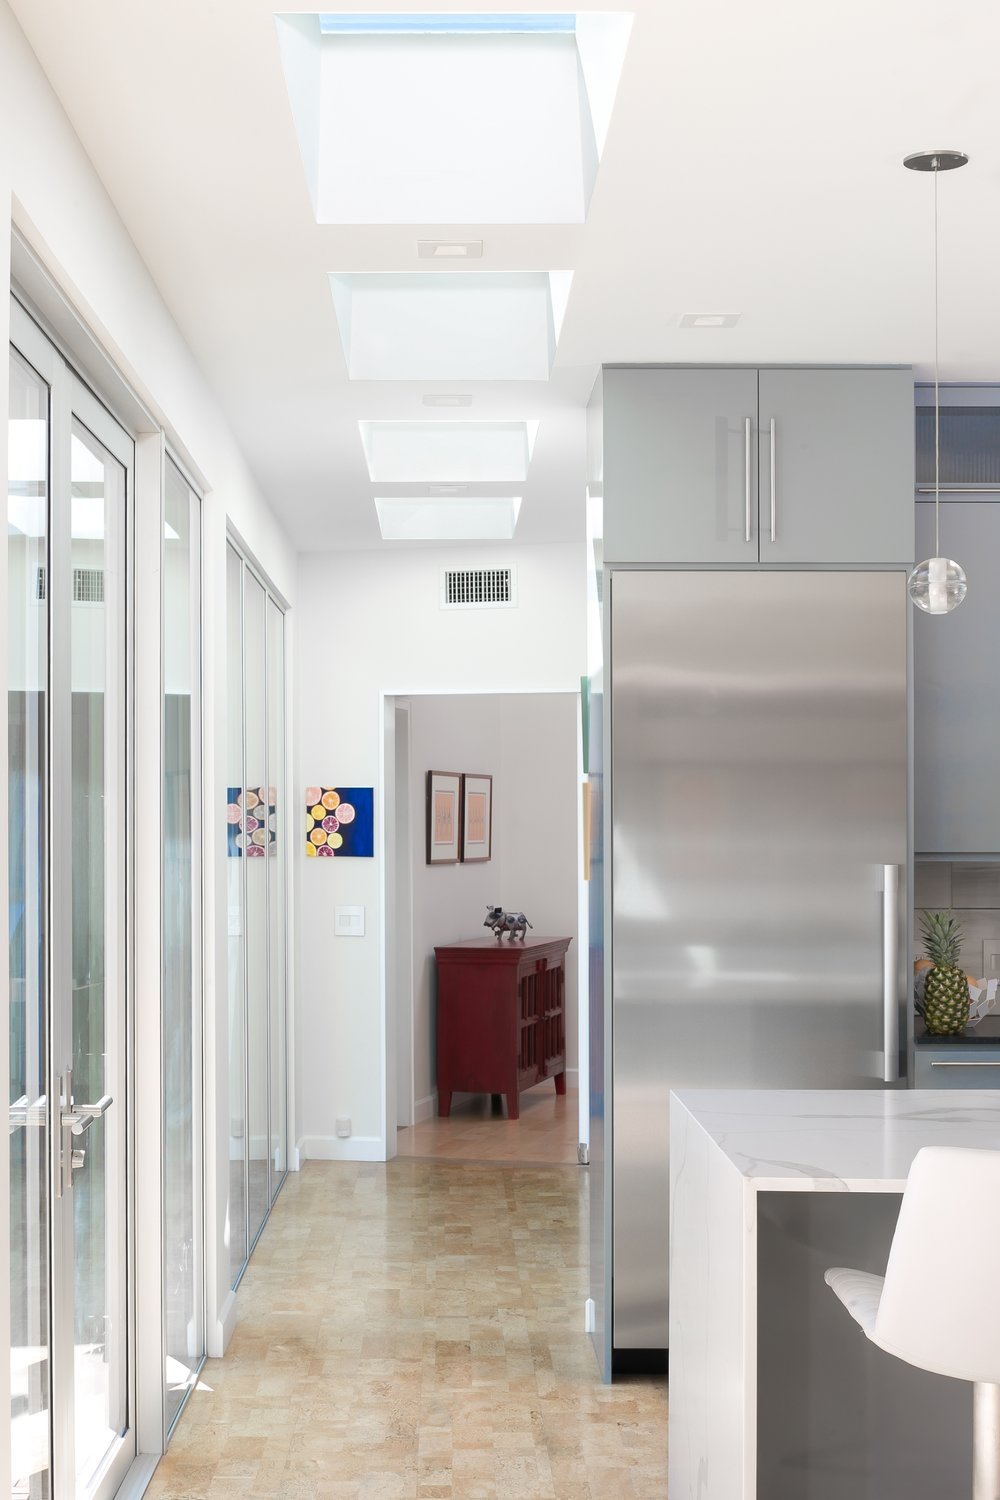 The hallway design with skylights, picture windows, patio doors and cork flooring creates an open and inviting space